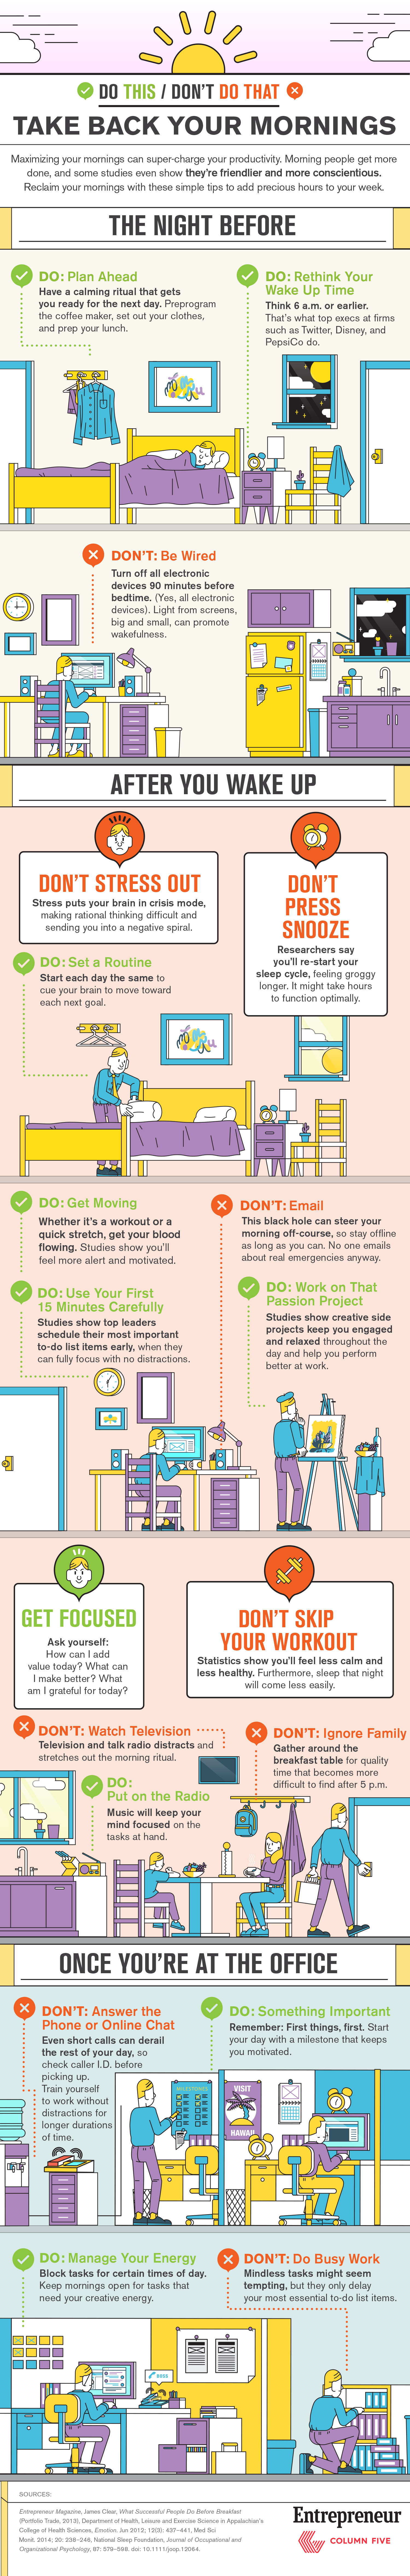 Take your mornings back infographic